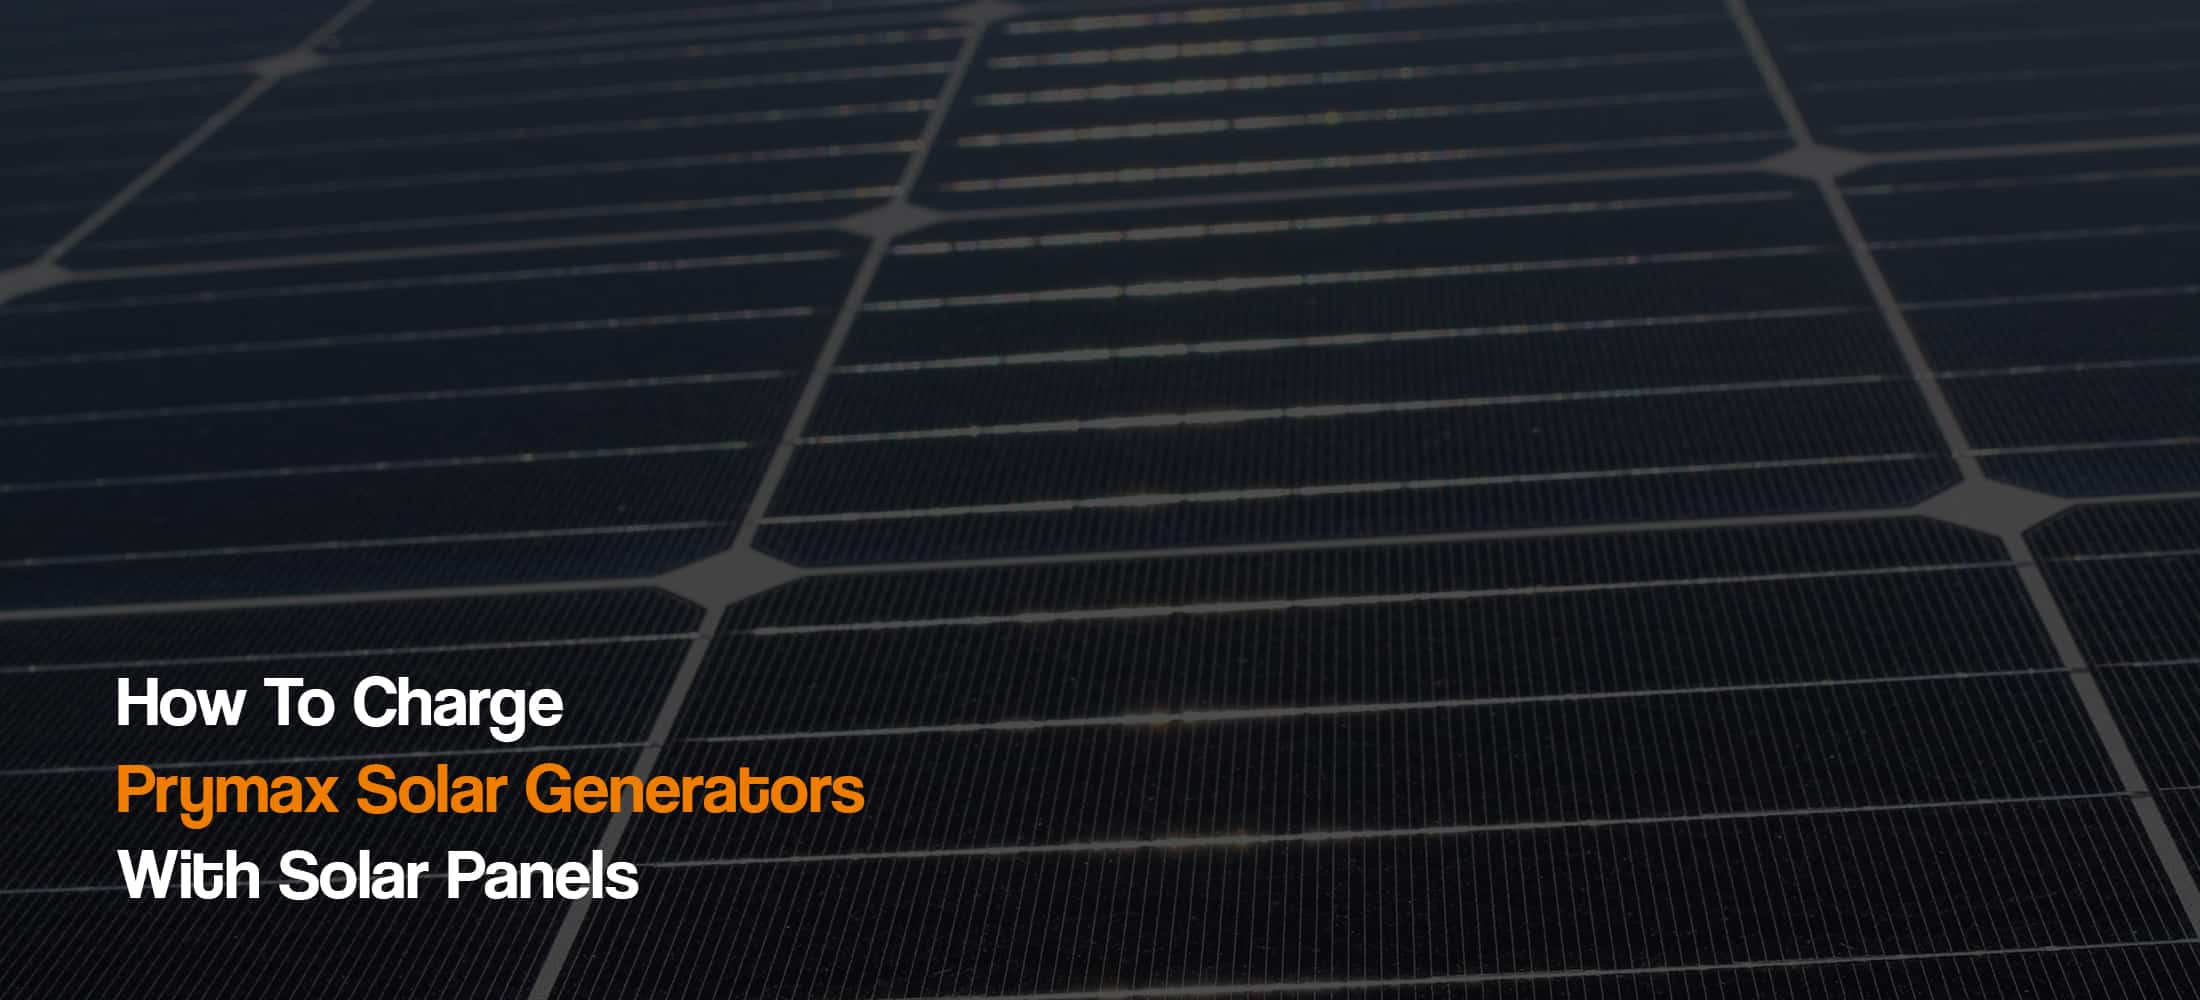 how-to-charge-prymax-solar-generator-power-station-with-solar-panels-the-solar-addict